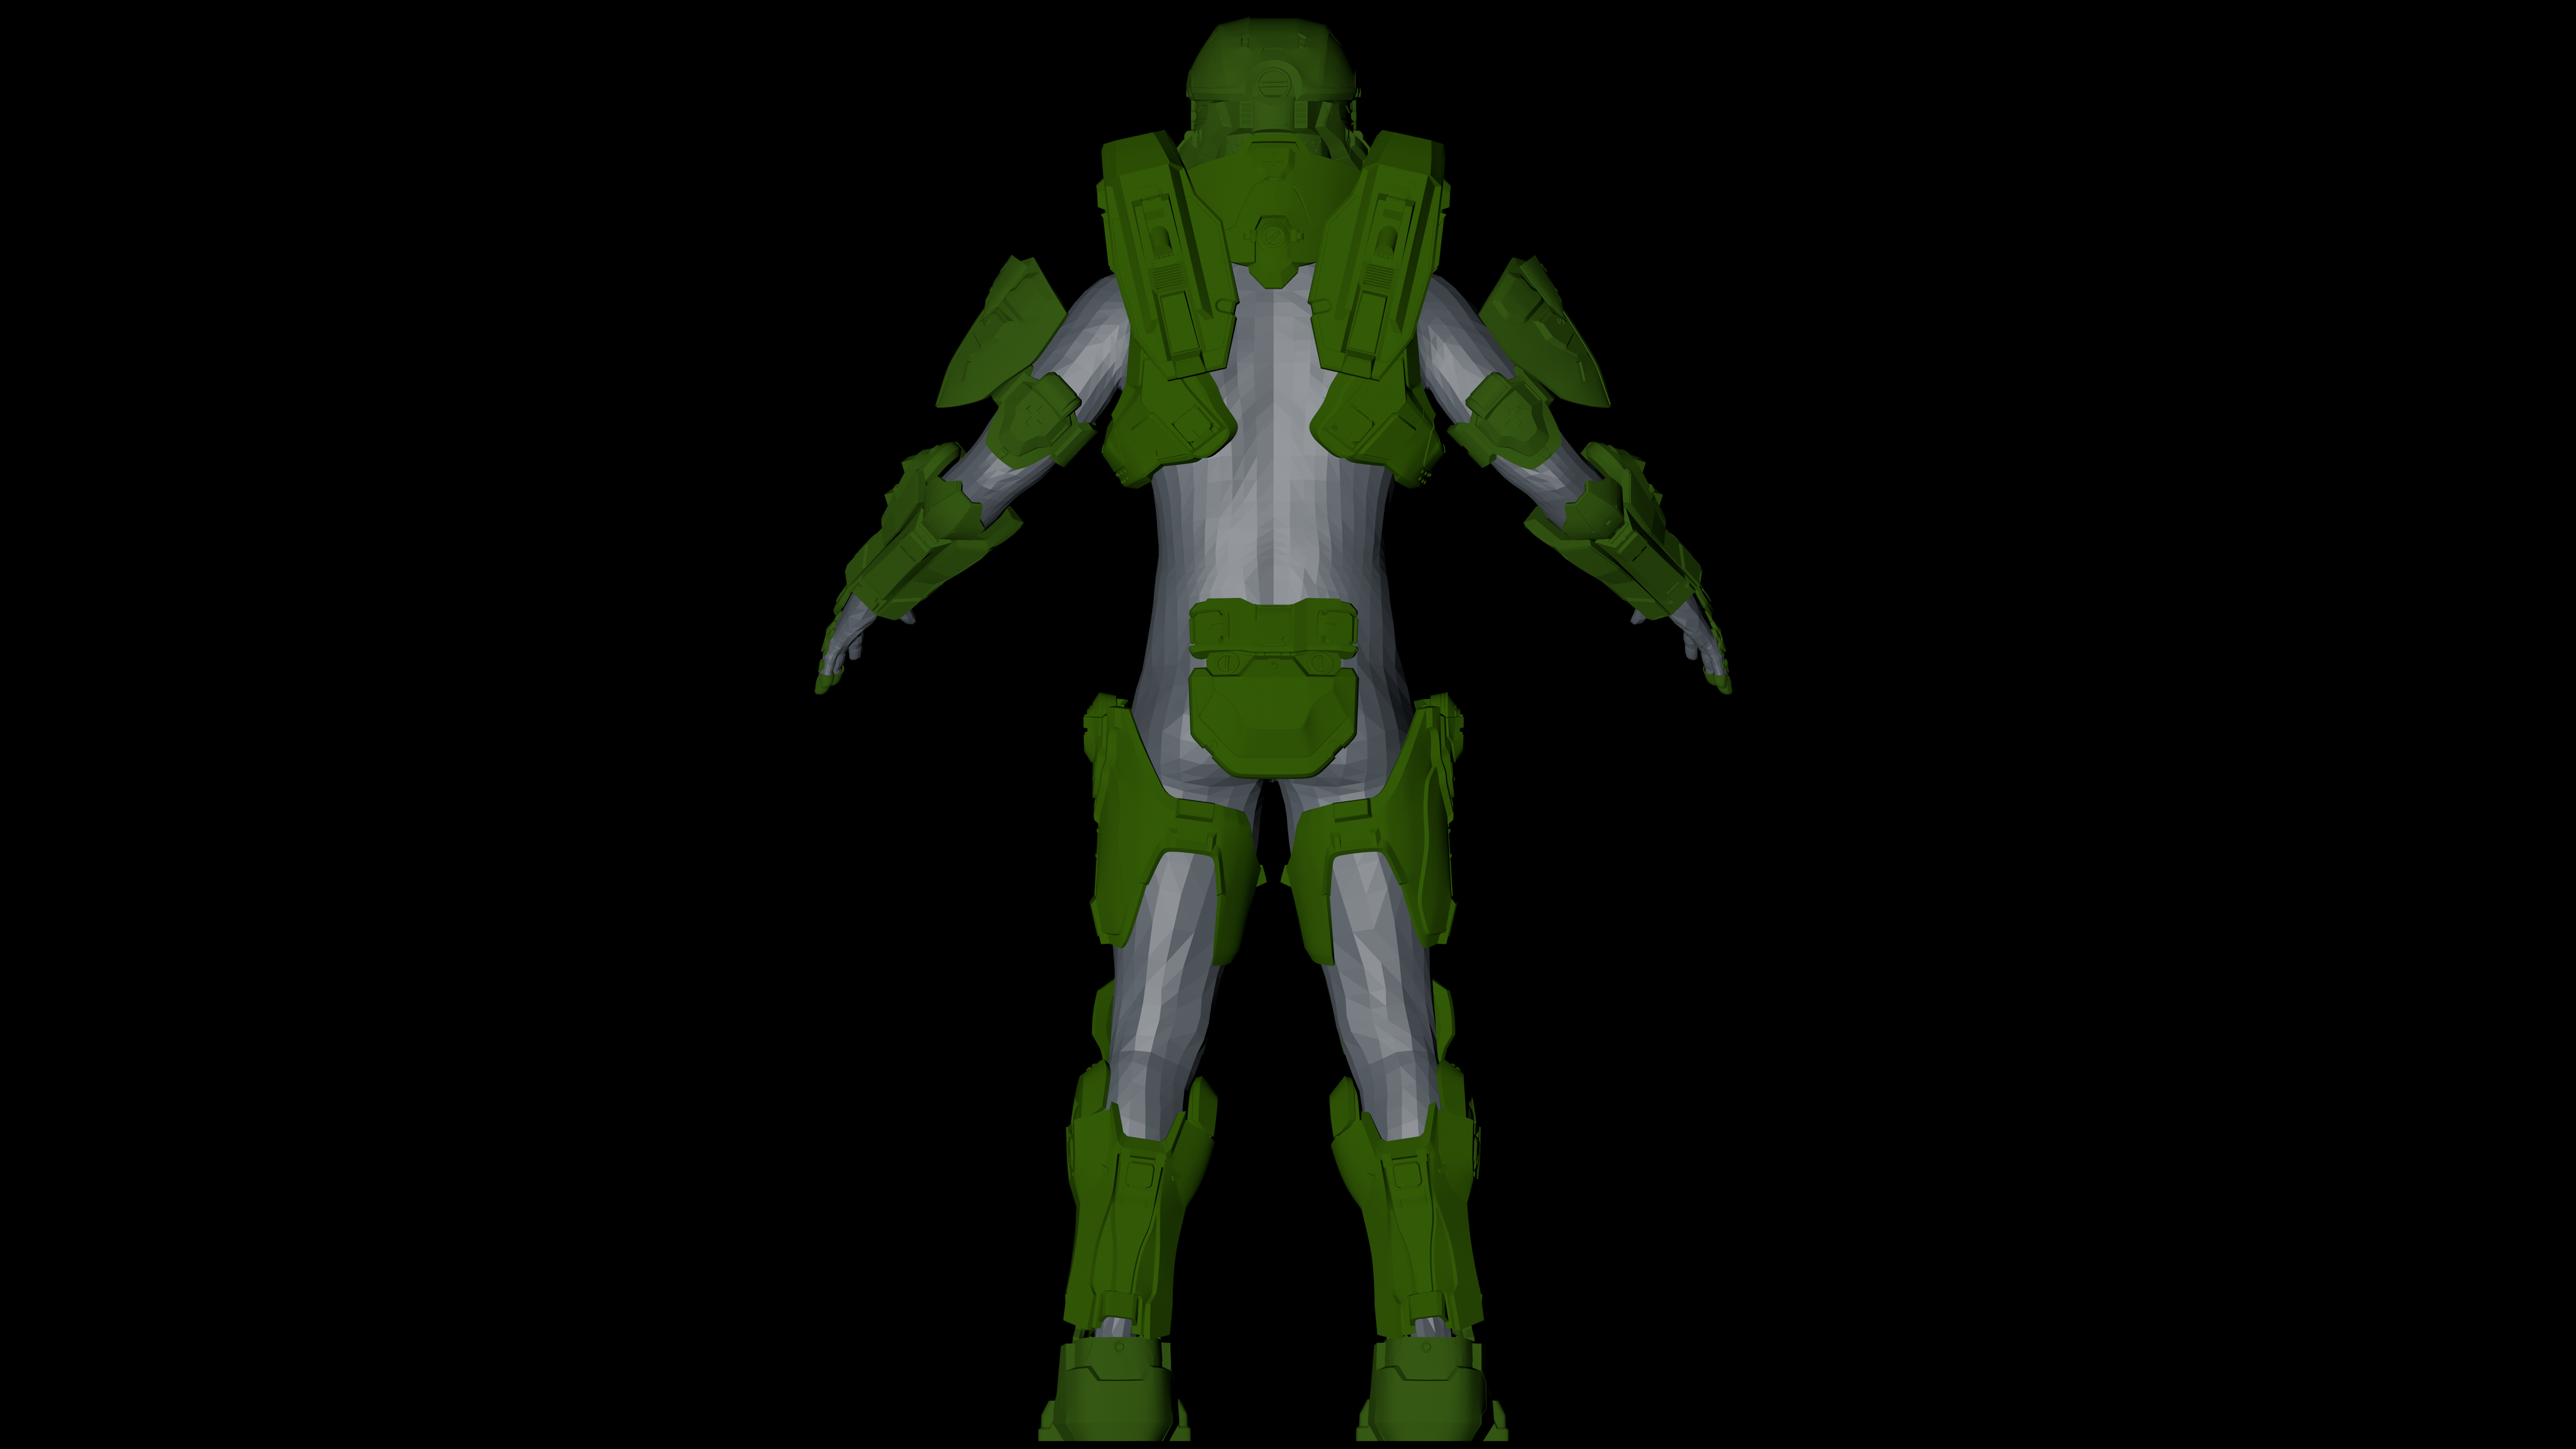 me with armor master chief 2.png